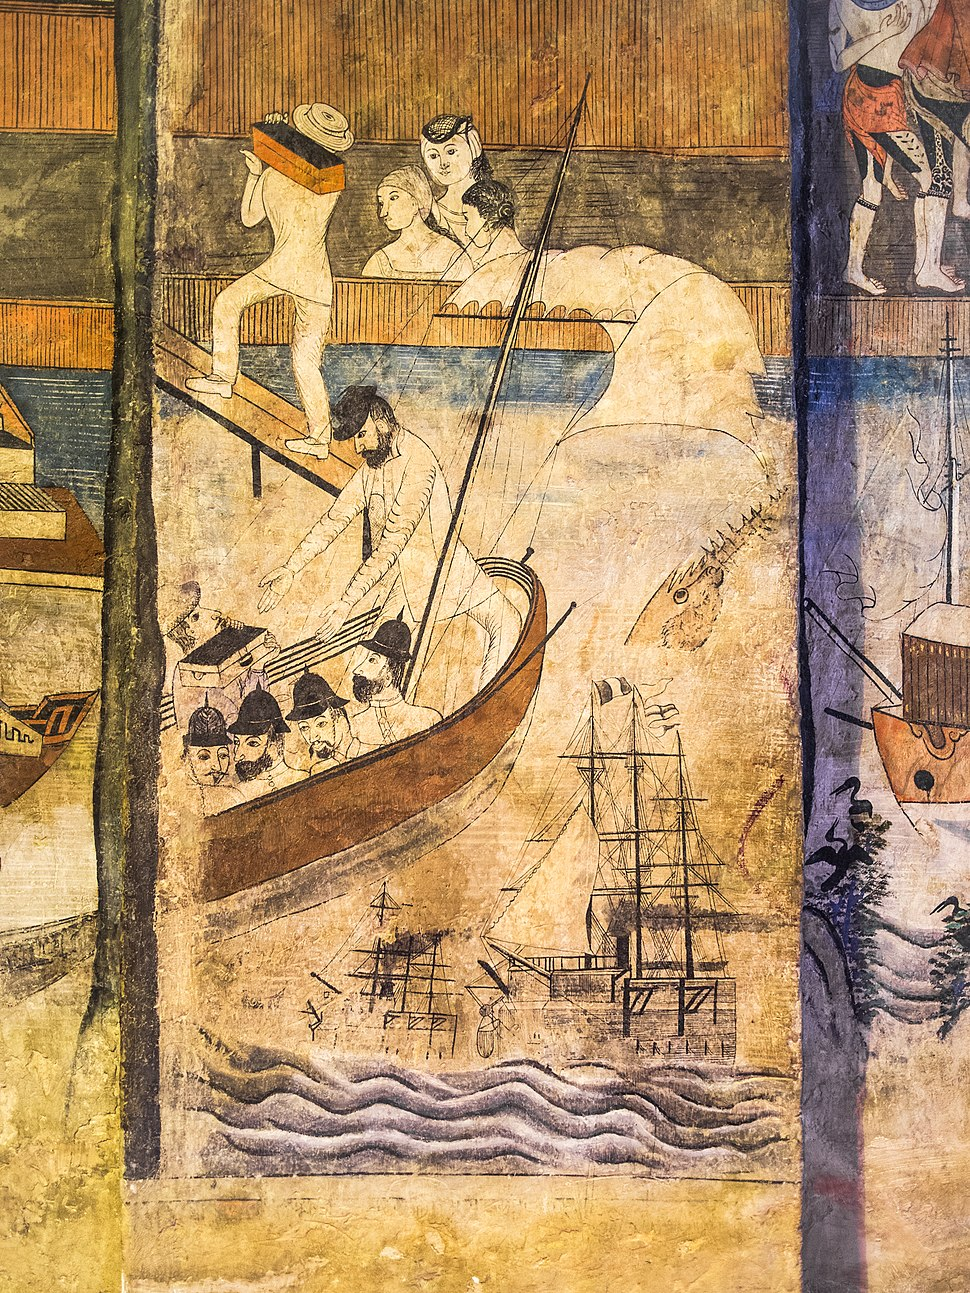 2013 Wat Phumin mural 03 detail Pak Nam incident